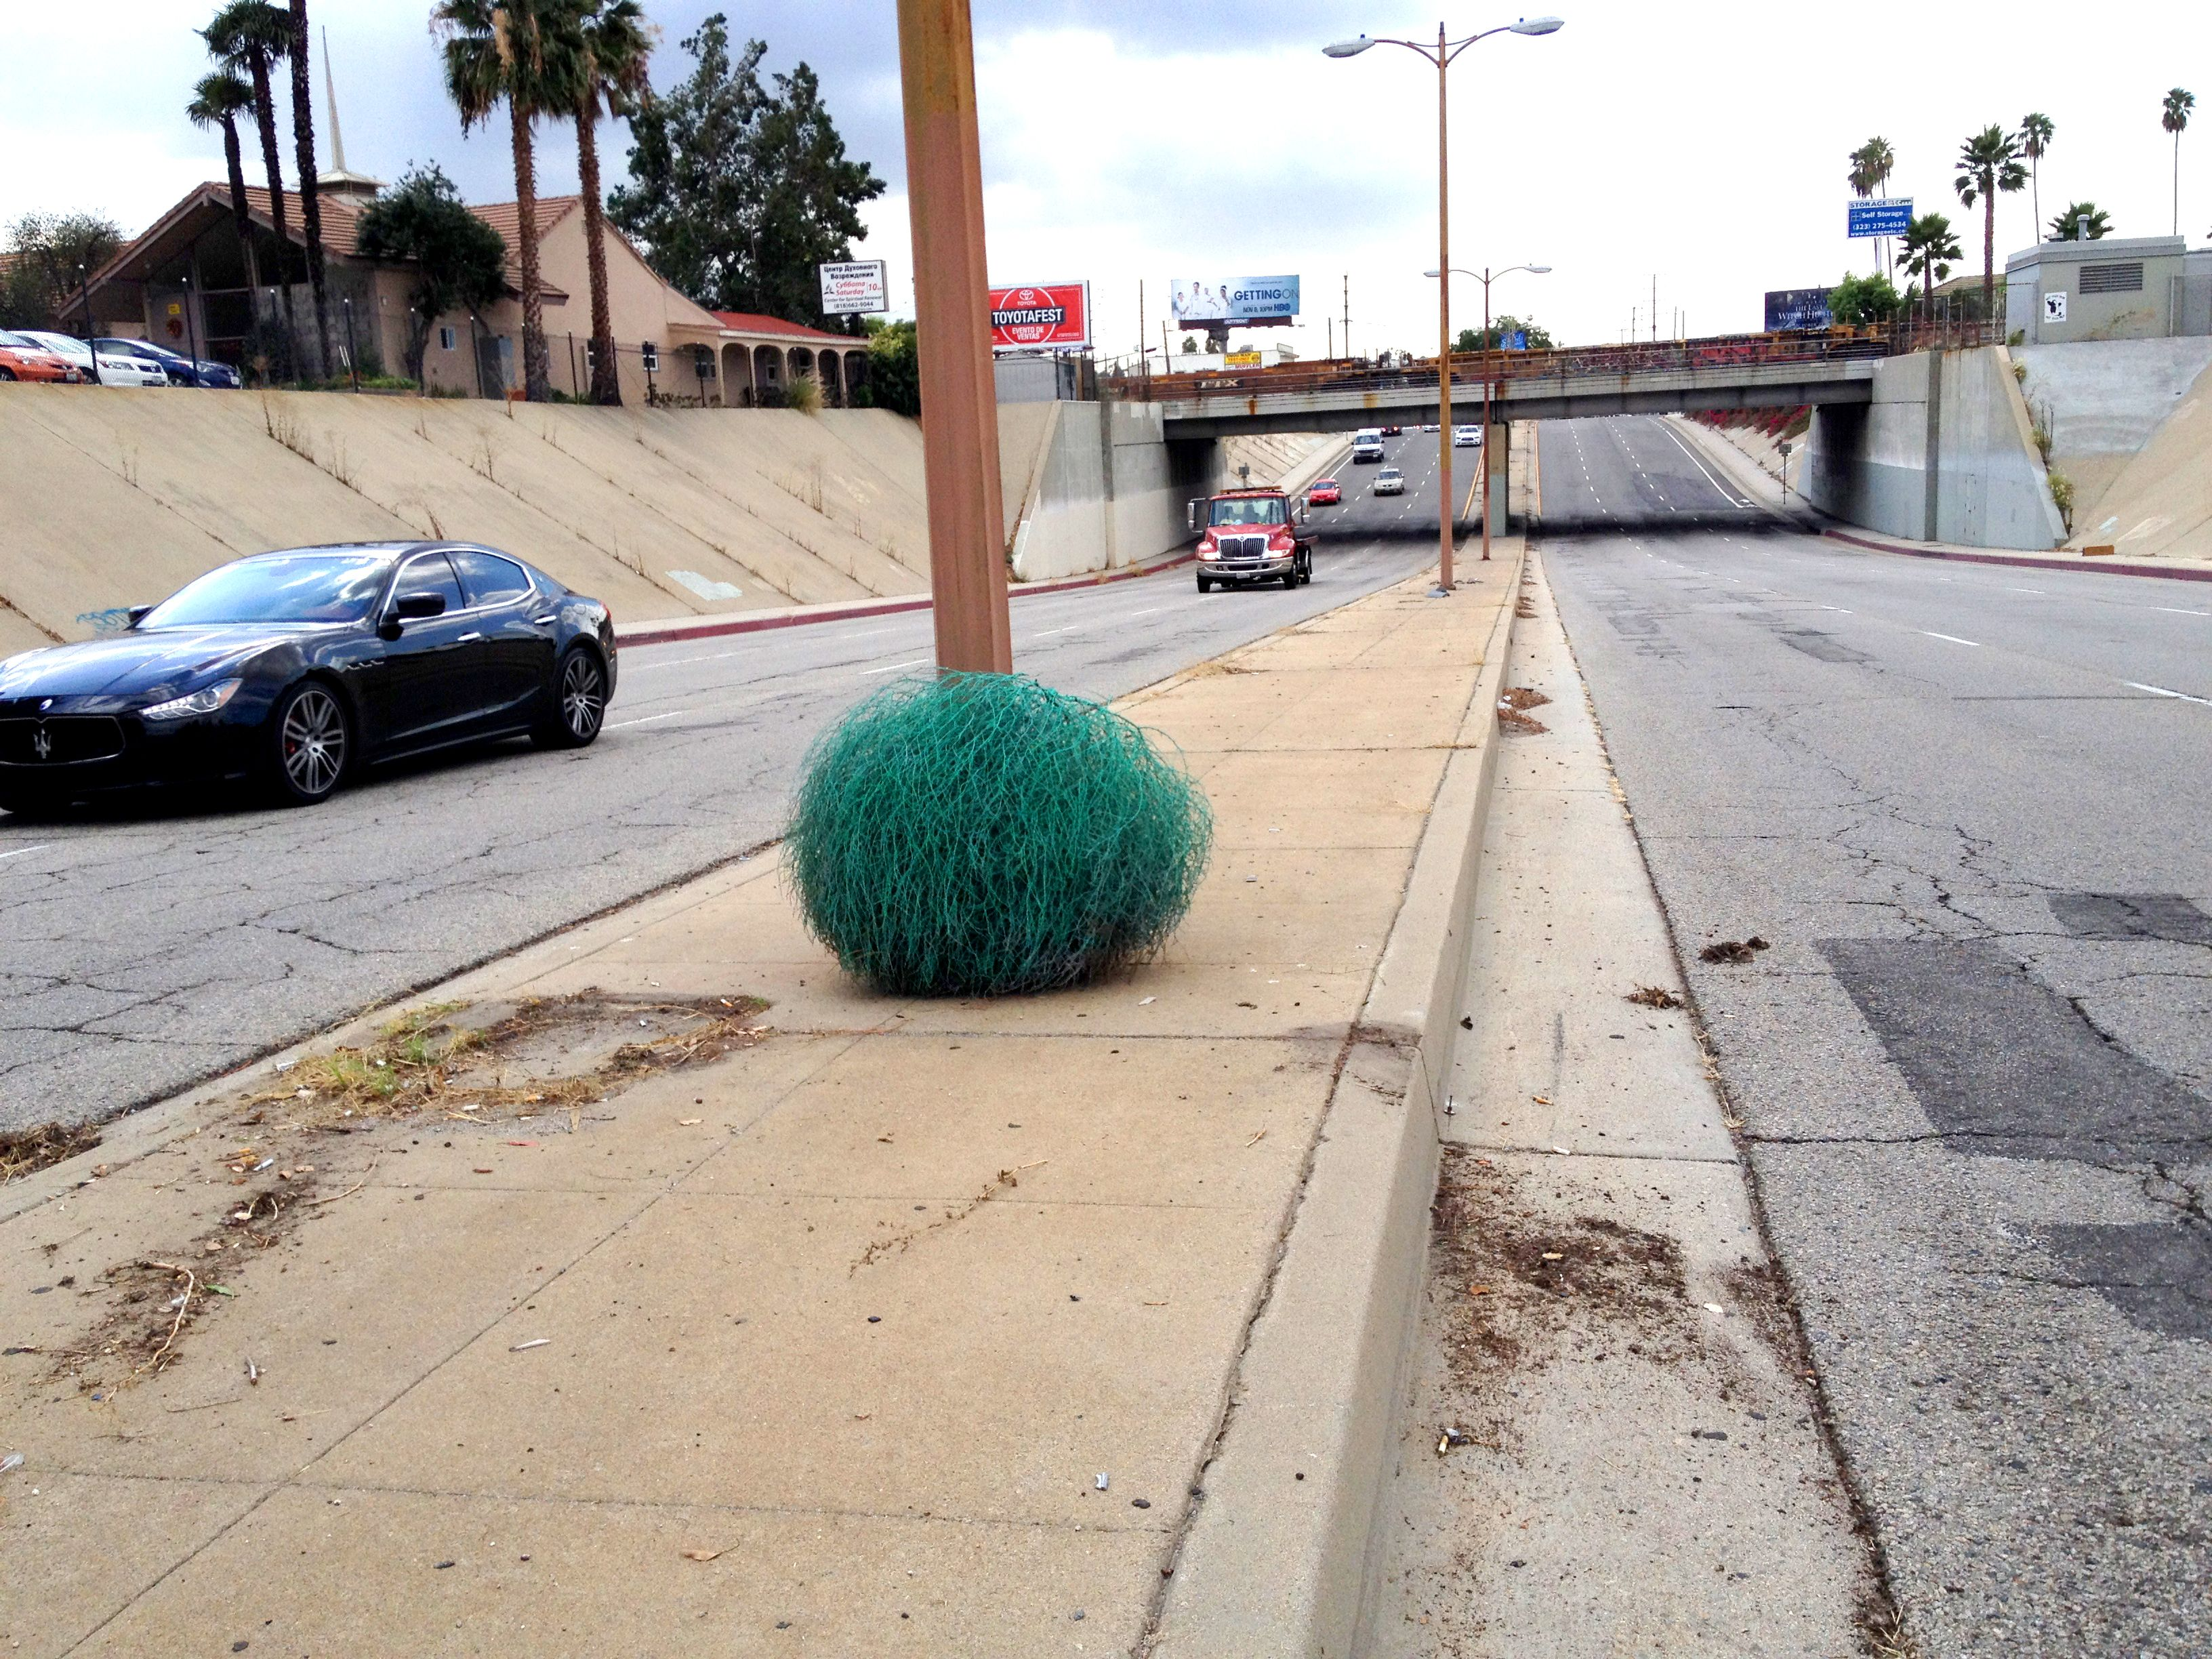 Color car los angeles - Painted Tumbleweed By Charles Level Los Angeles Blue Color Streets As A Museum Space